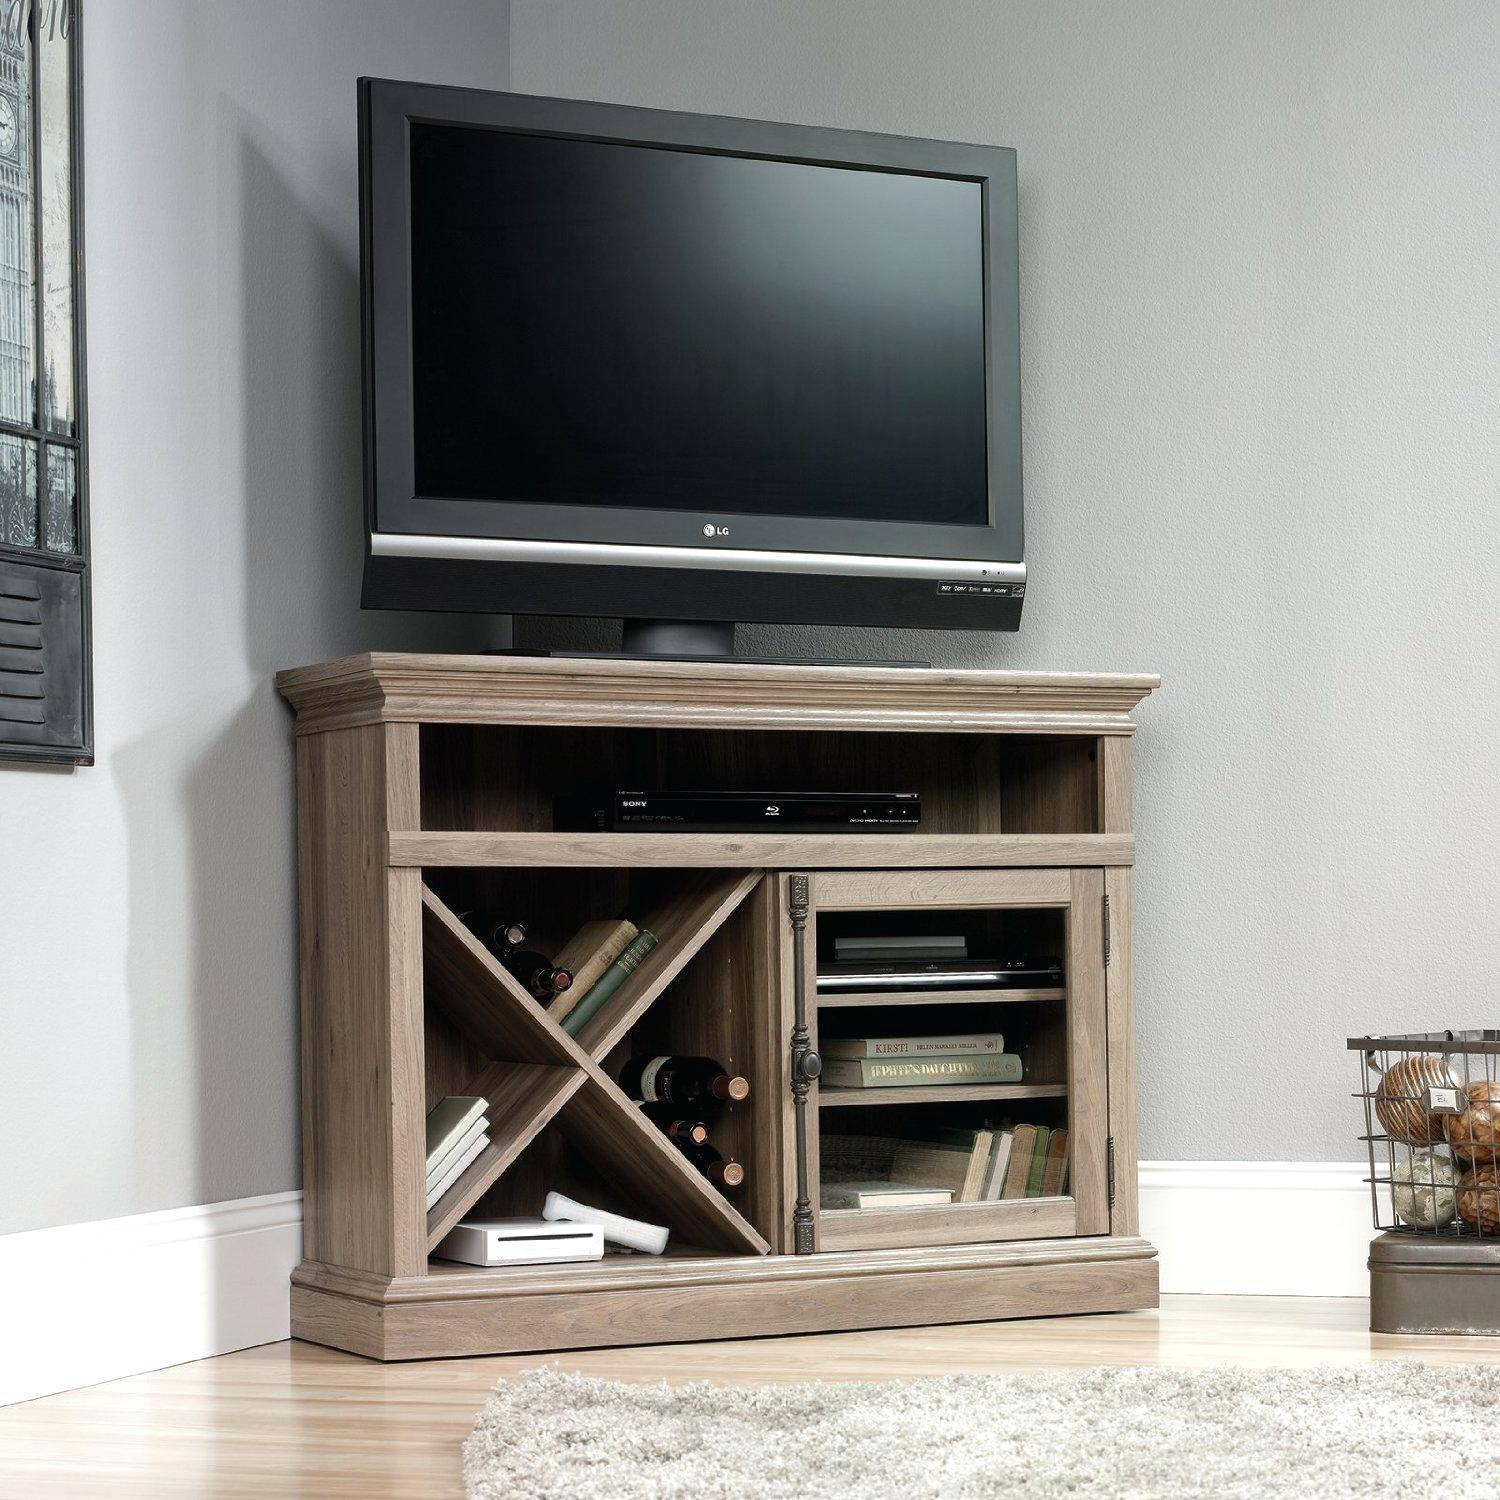 Tv Stand : Large Size Of Tv Standswalker Edison Inch Wood Tv Stand Inside Cornet Tv Stands (View 11 of 15)